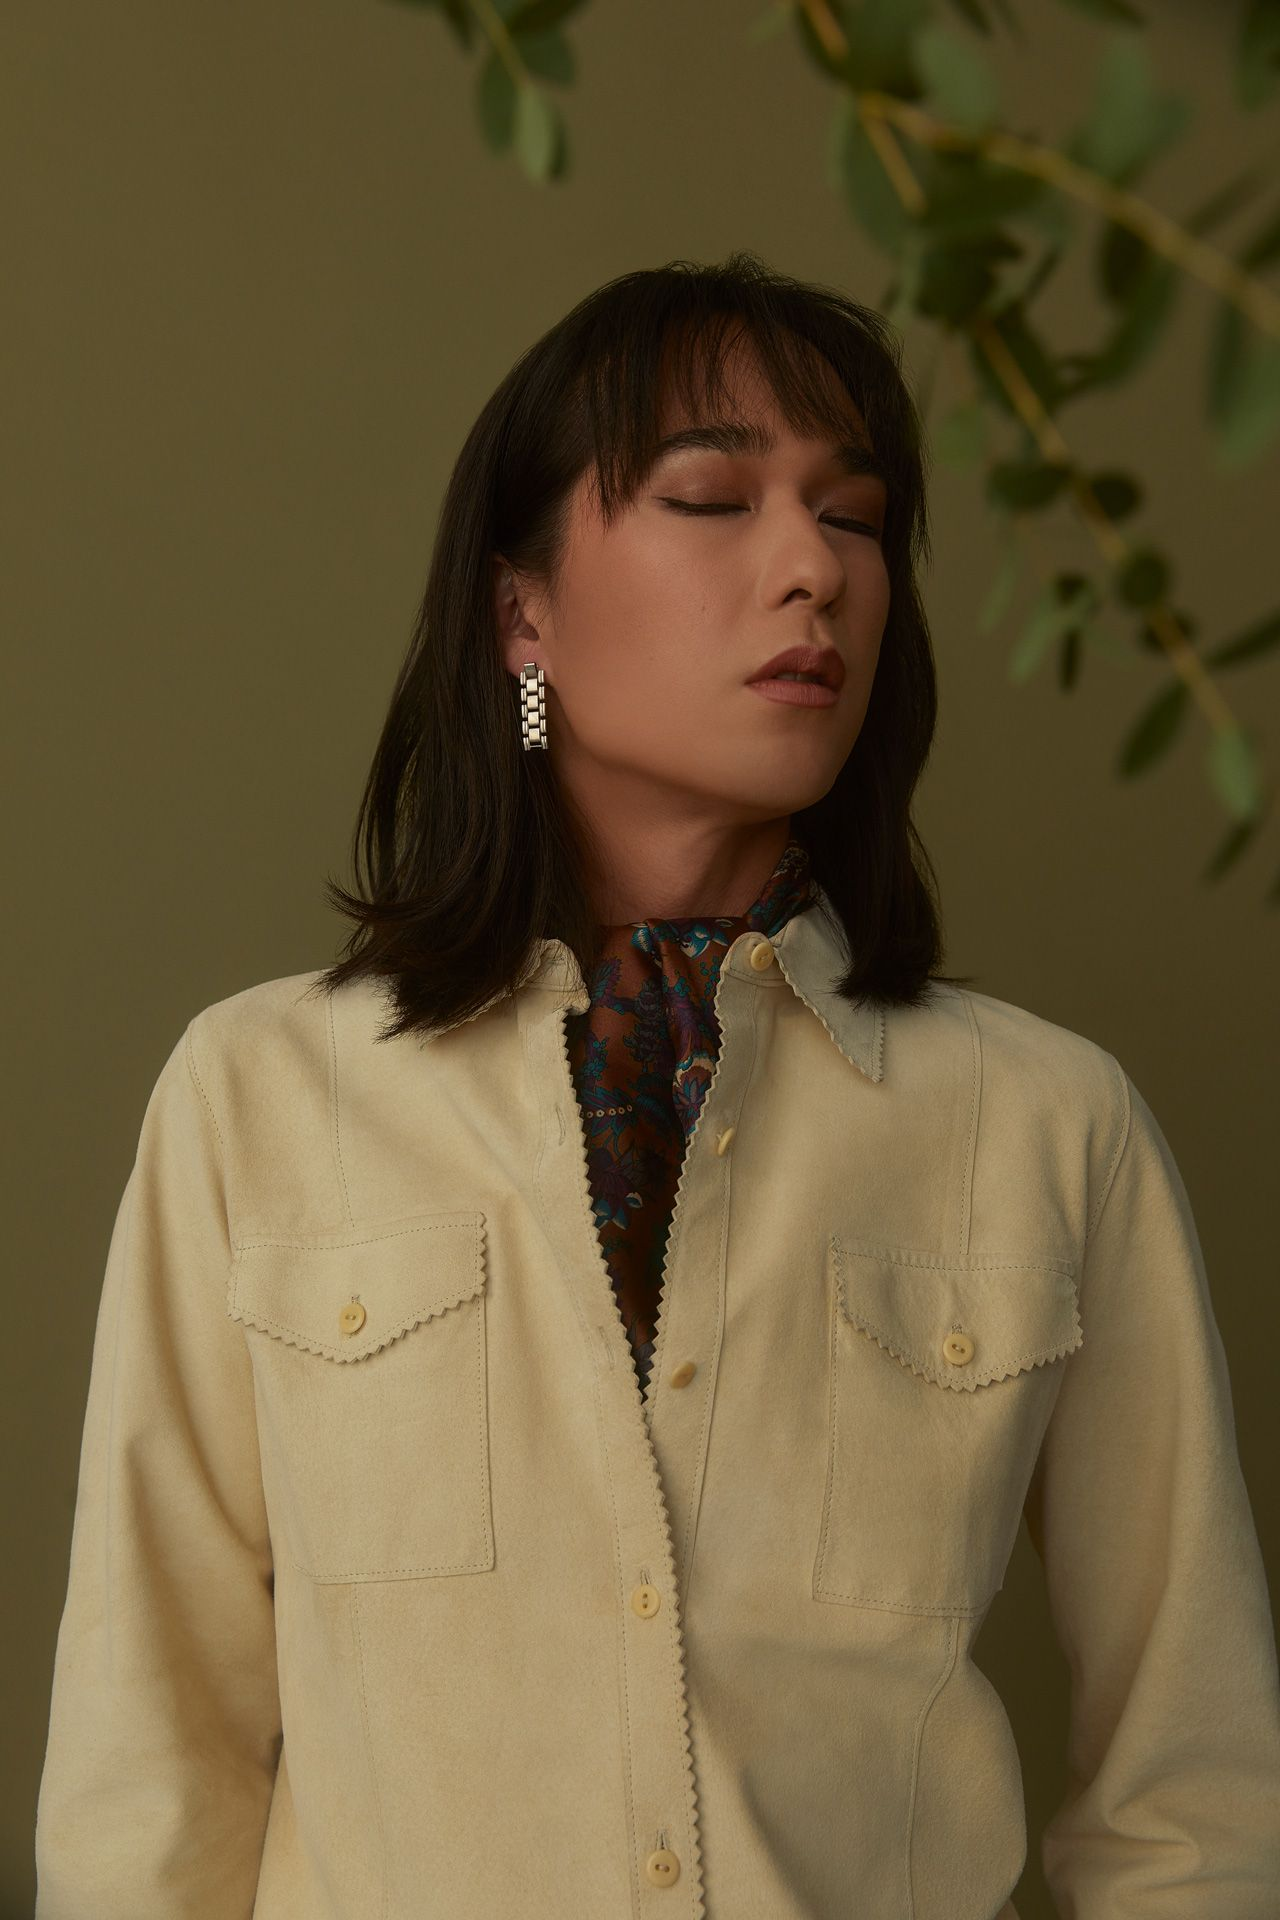 female model wearing beige suede button-up shirt with her eyes closed on dark green background photographed by Kelly Jacob for LEV